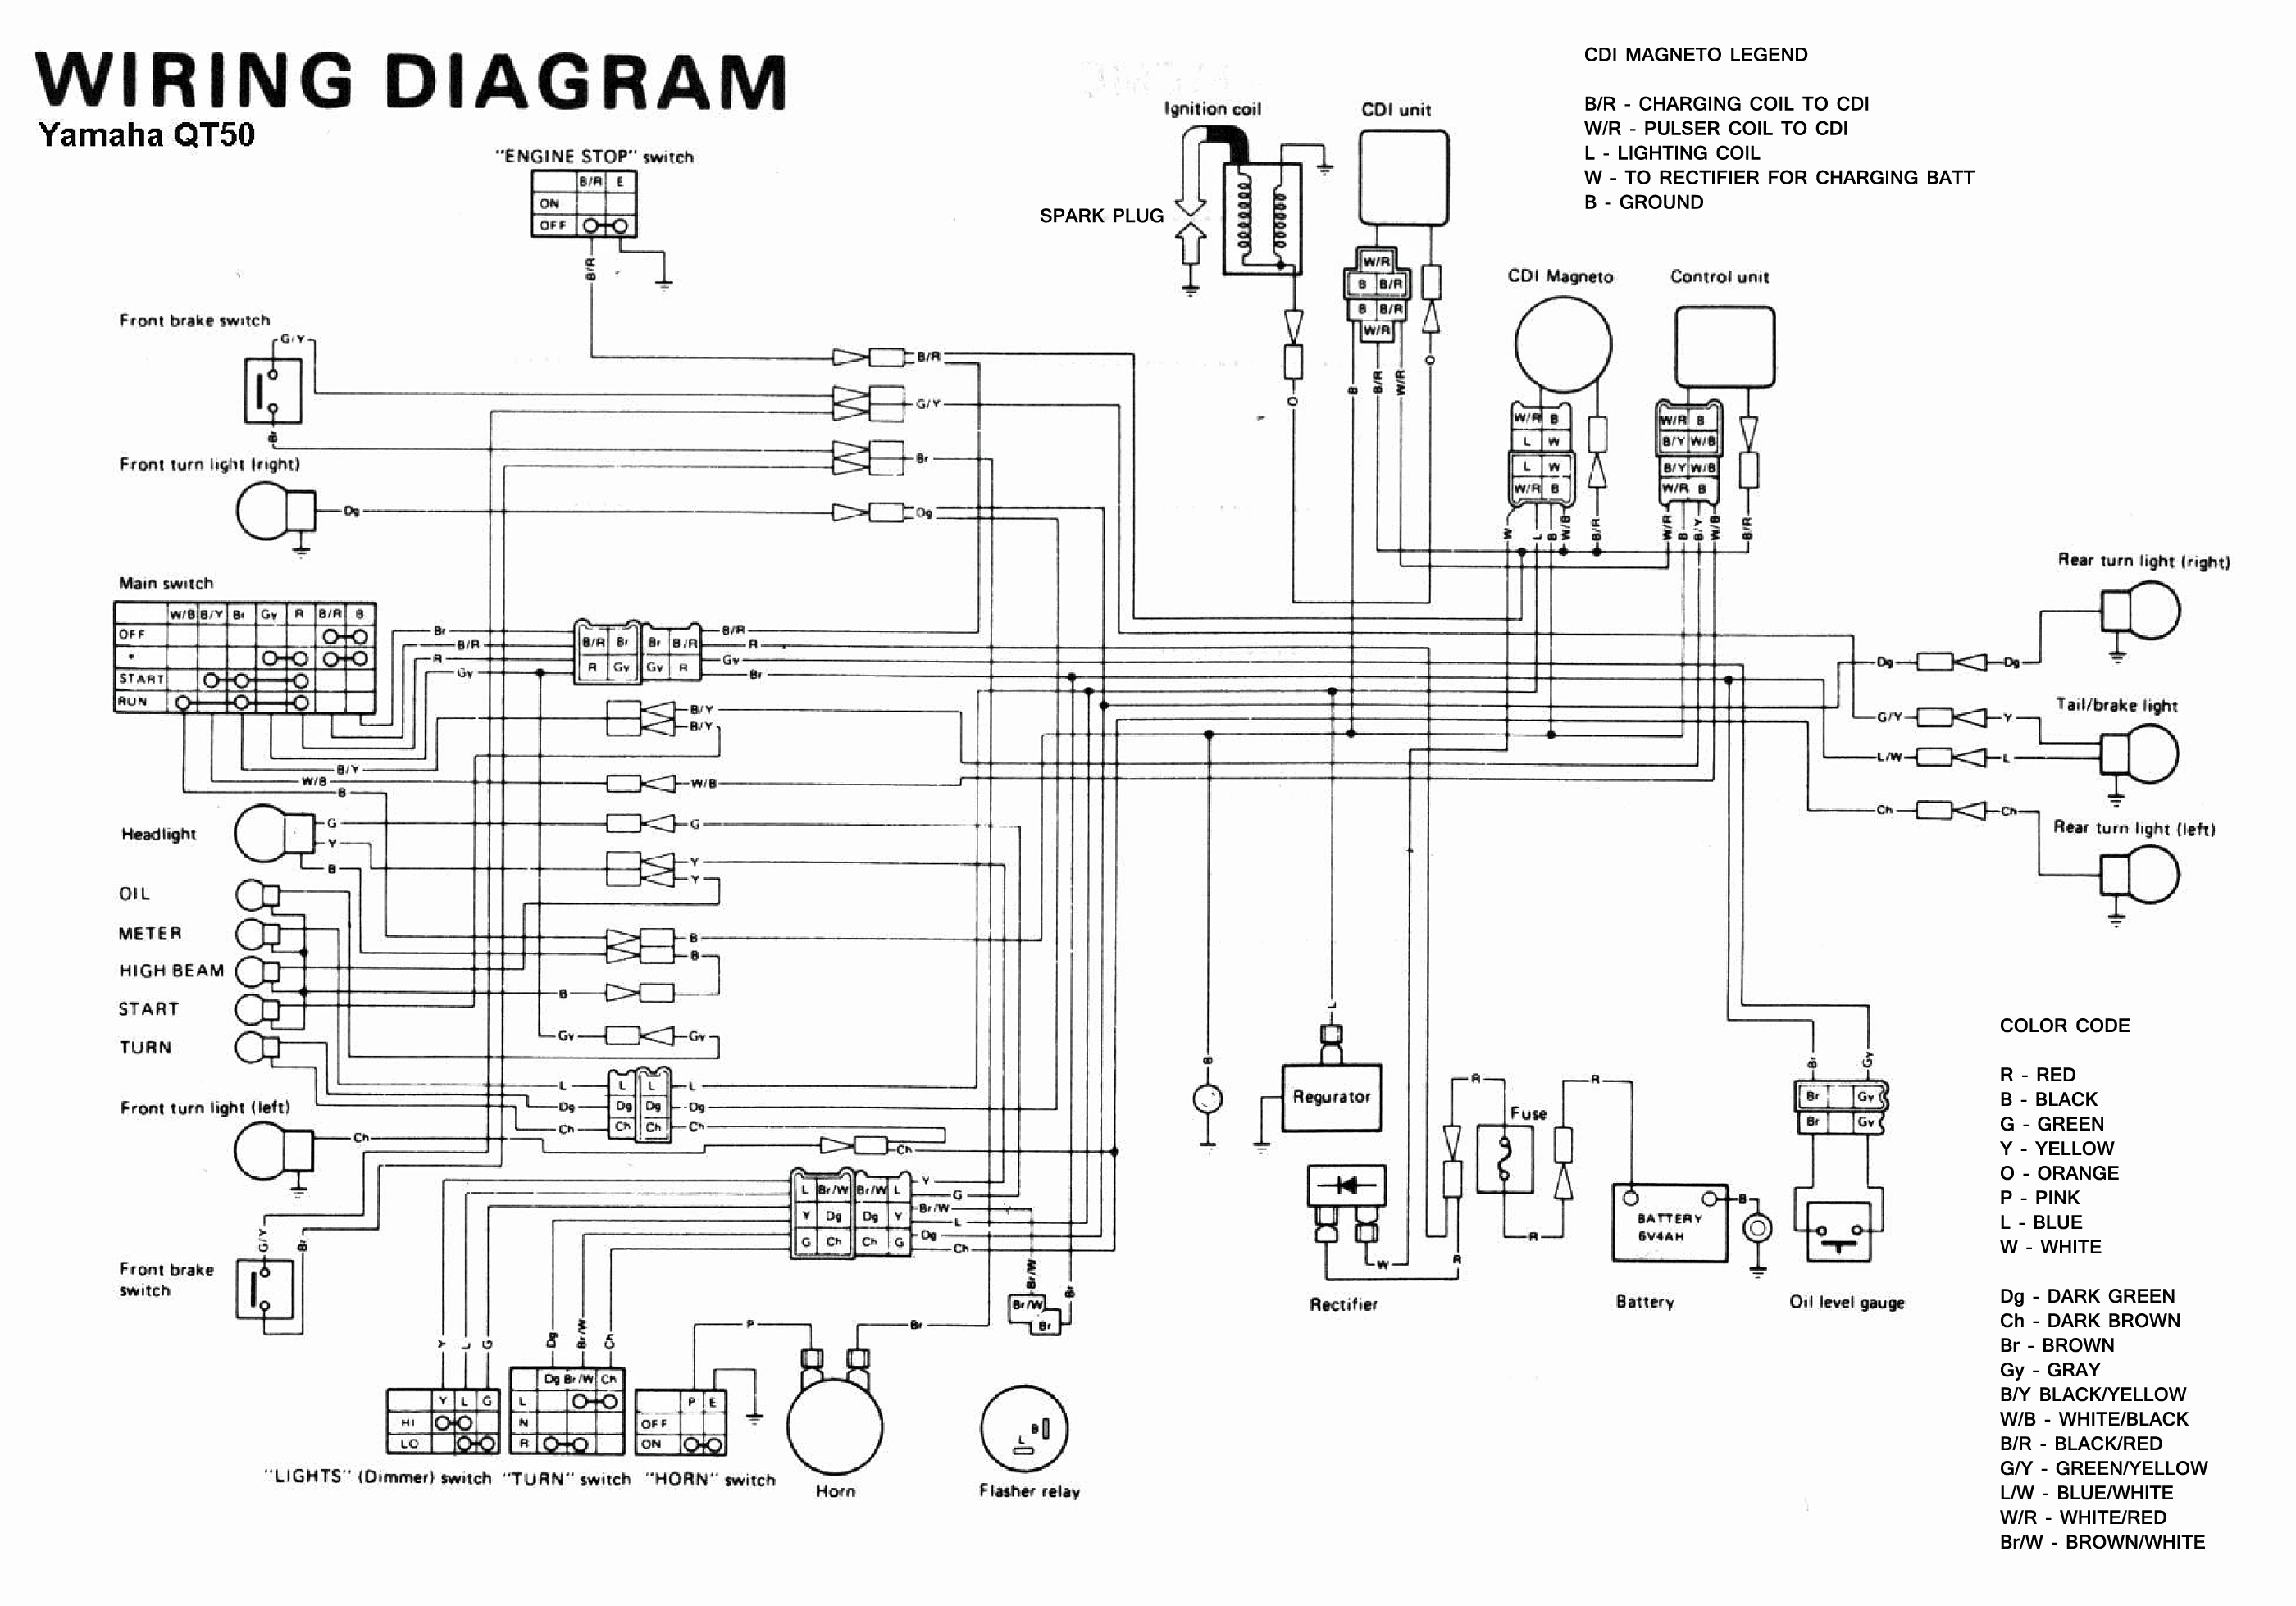 Yamaha Xt550 Wiring Diagram Schematics Diagrams Xt 500 1982 550 And Xt500